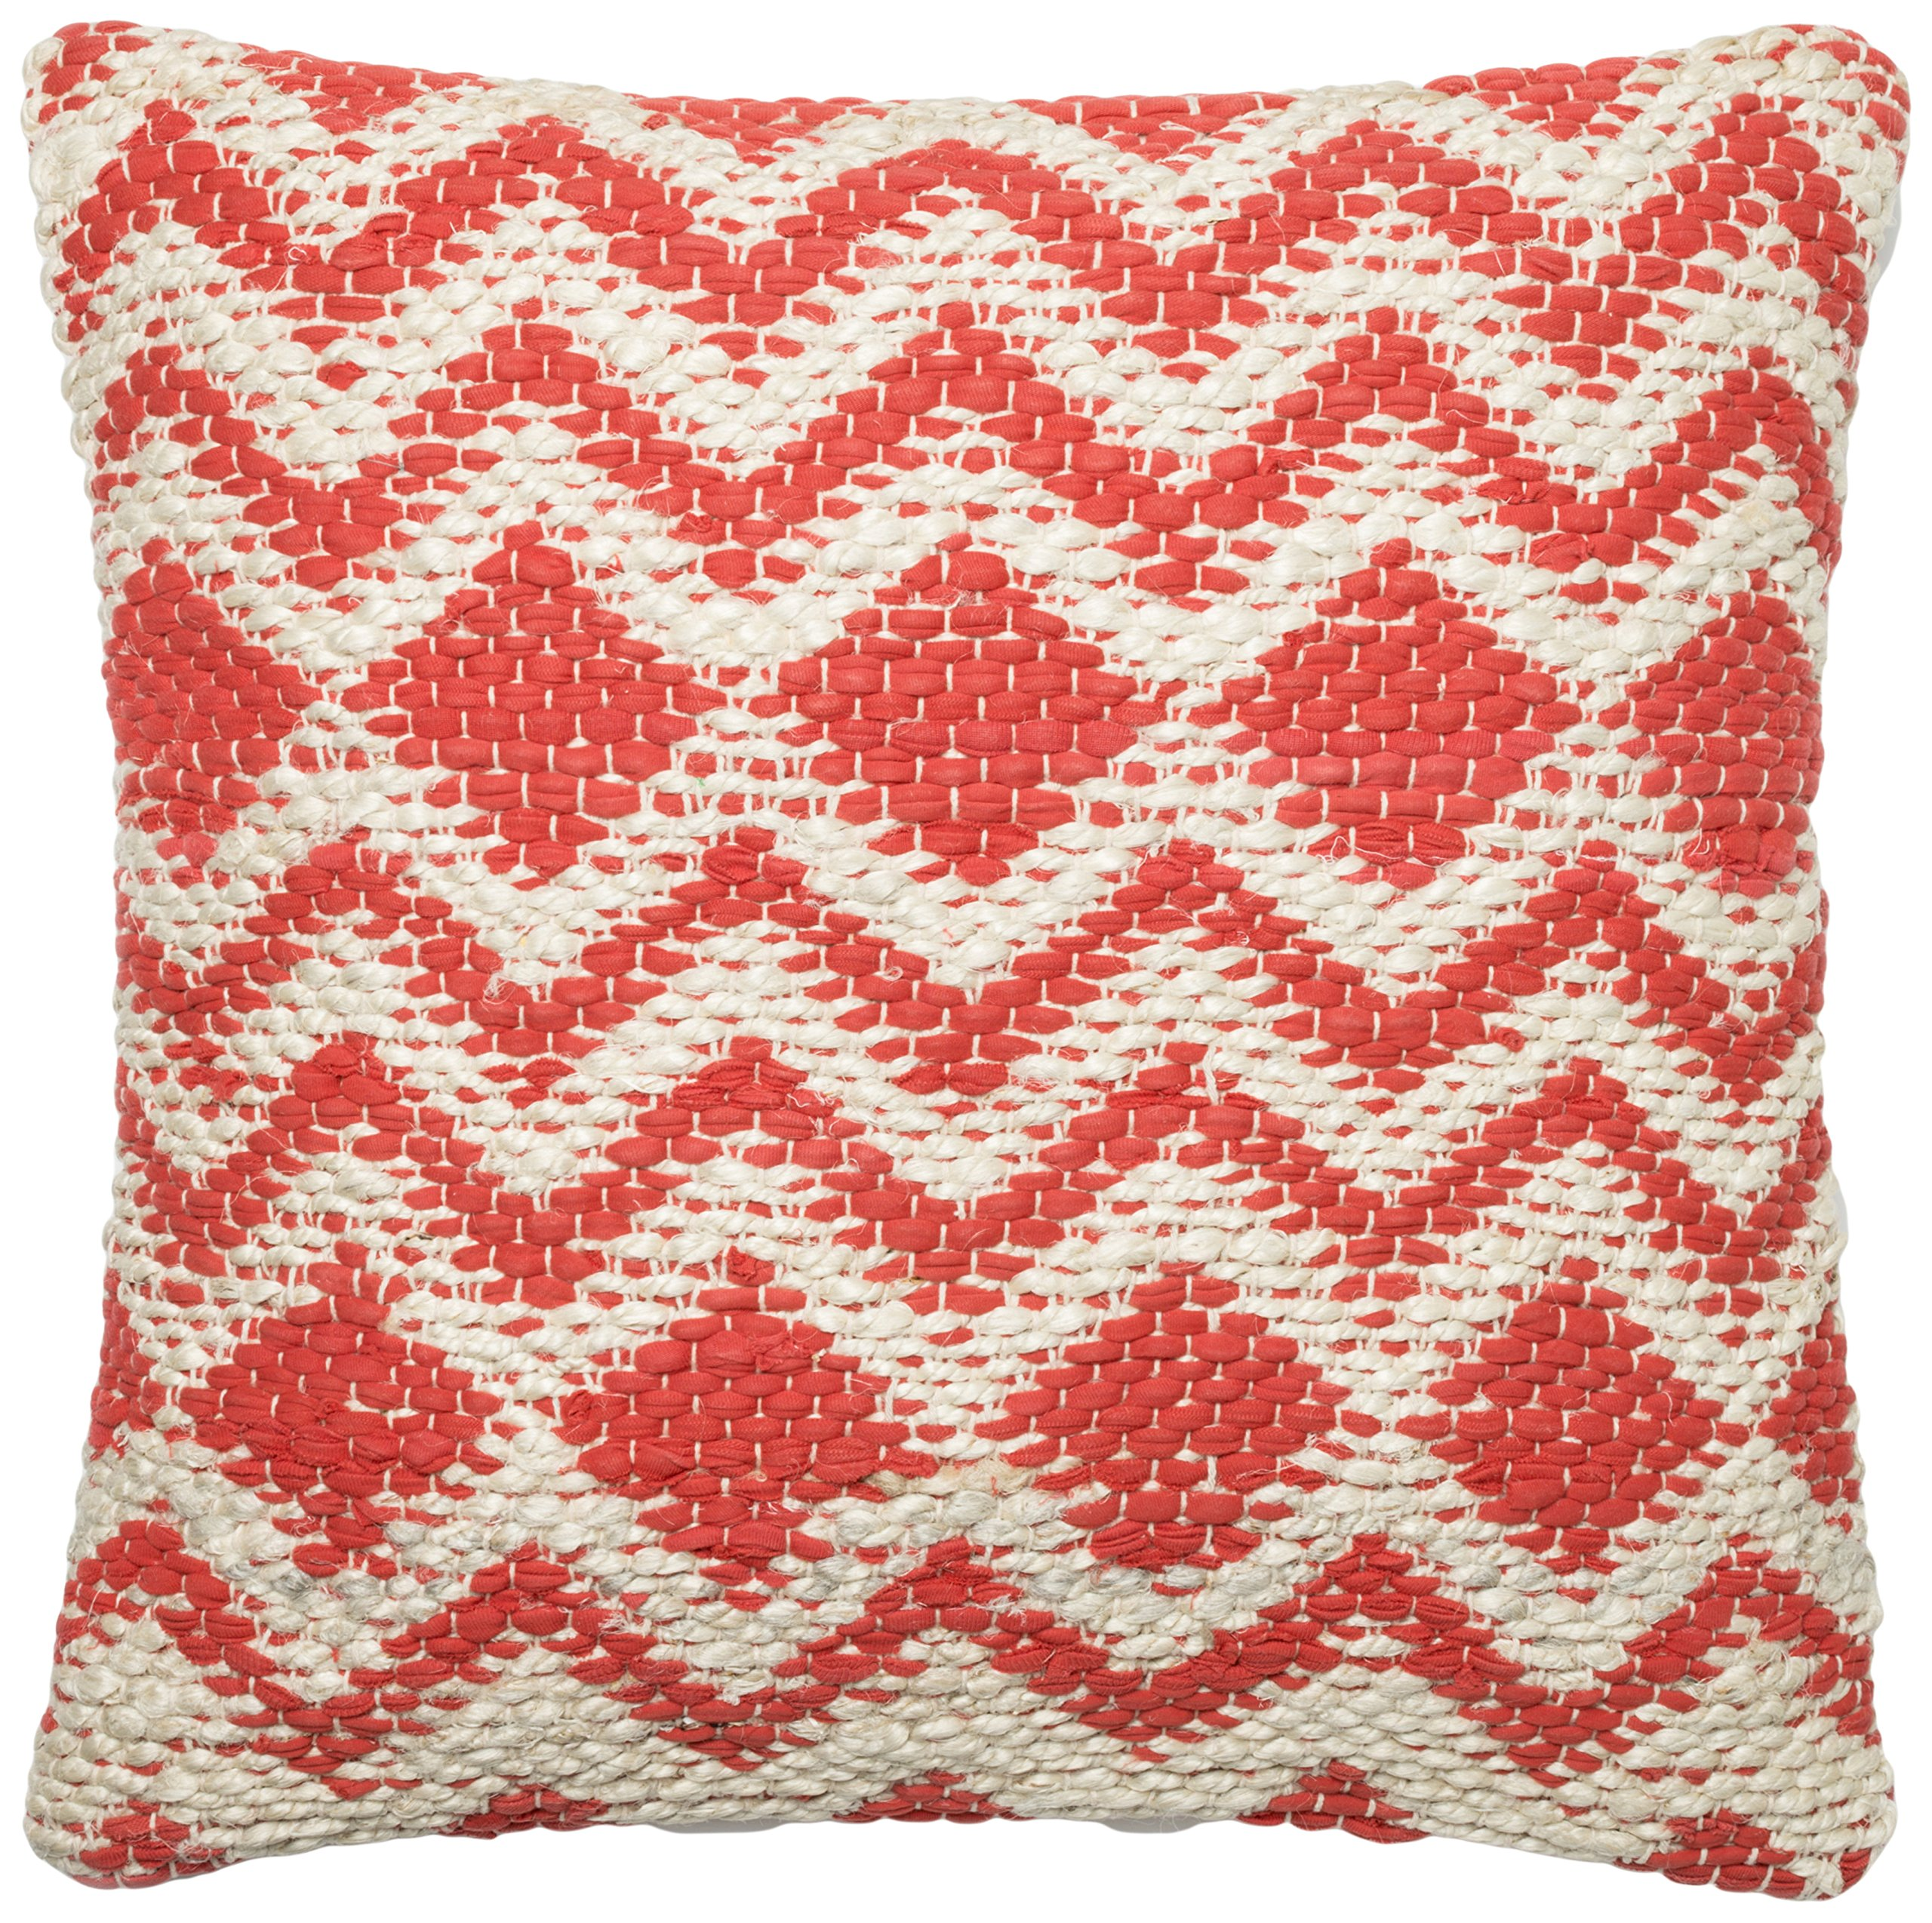 Loloi Pillow, Down Filled - Coral / Grey Pillow Cover, 22'' x 22''